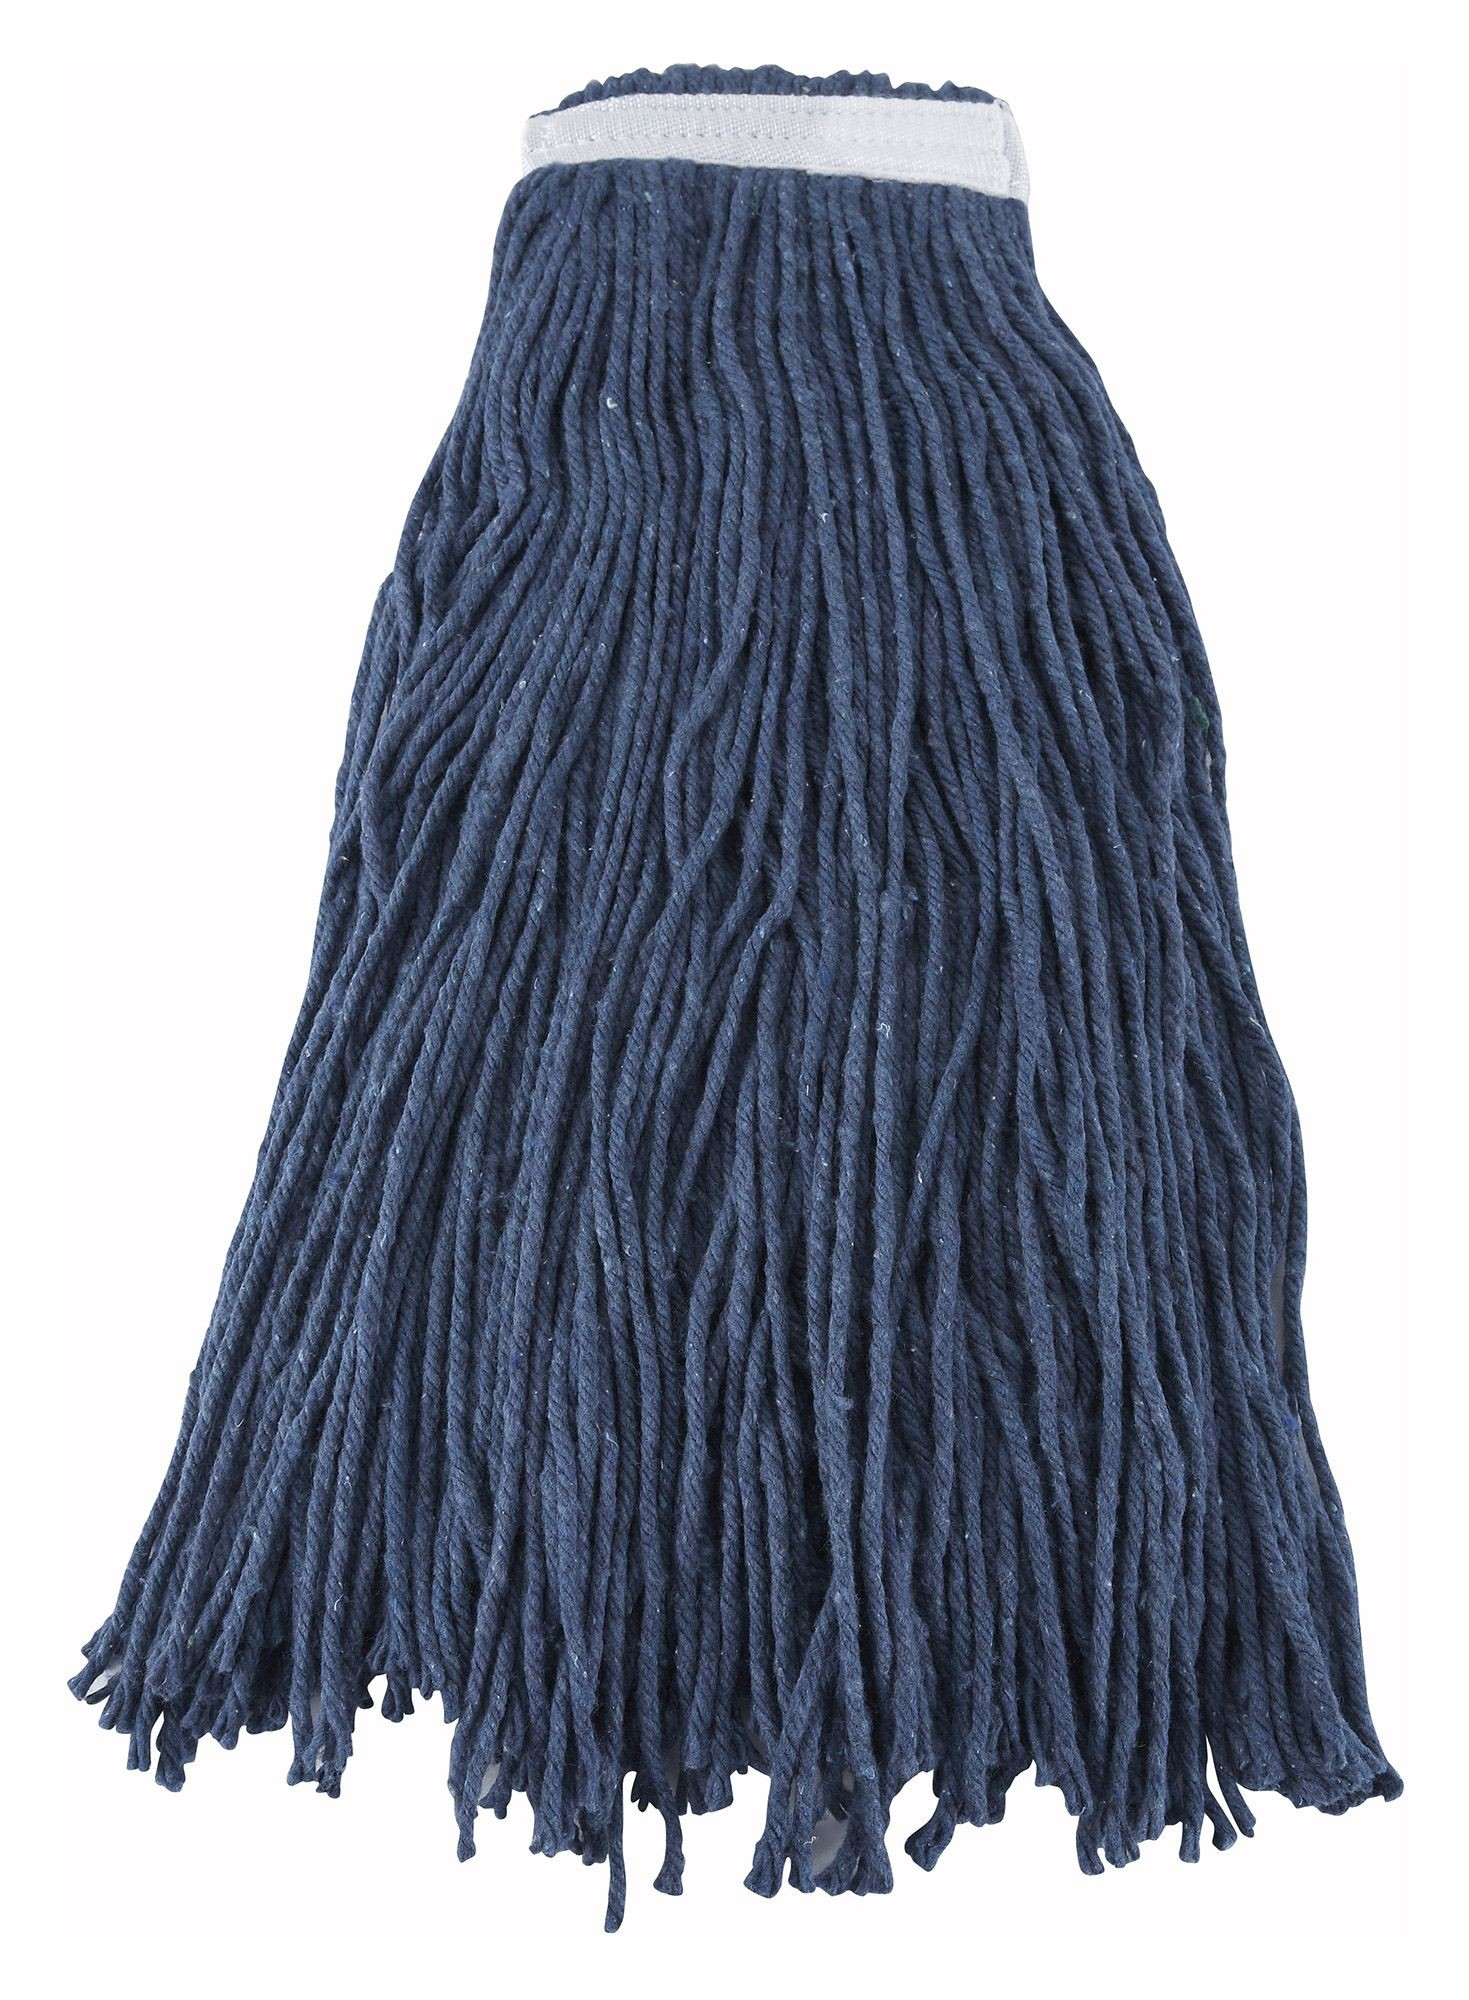 32Oz 800G Blue Yarn Mop Head Cut Head